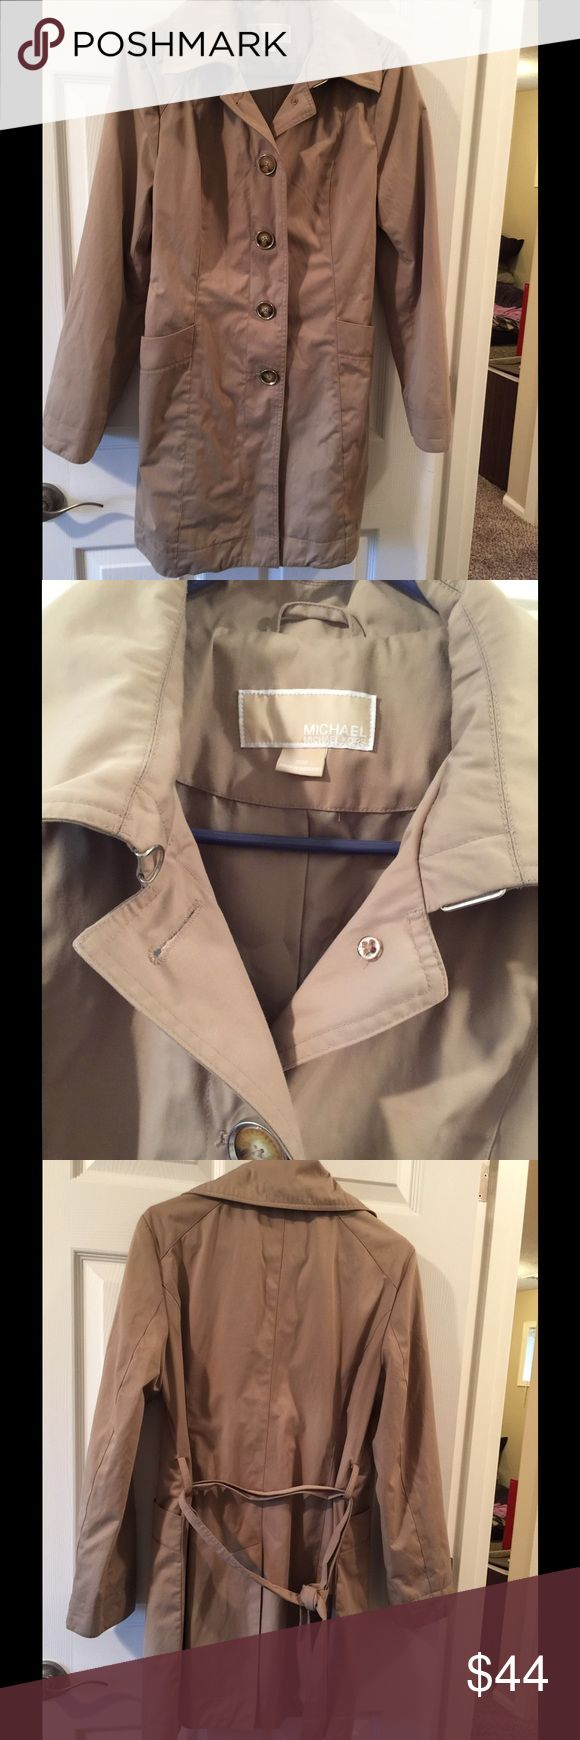 MK tan trench jacket coat M Great for dress and a rainy day  Beautiful Michael Kors  Excellent condition Michael Kors Jackets & Coats Trench Coats